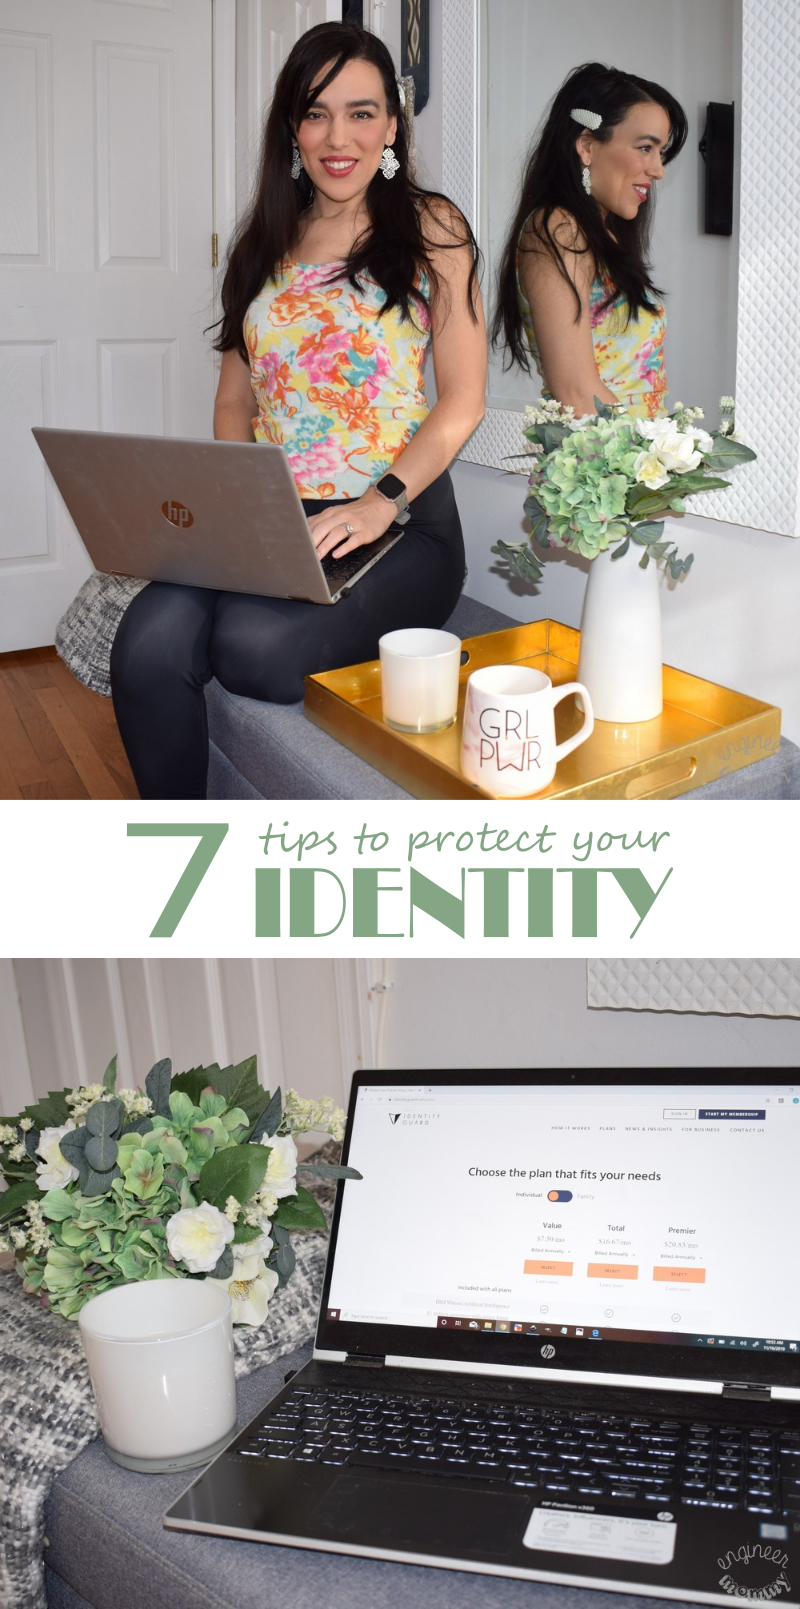 7 Tips to Protect Your Identity